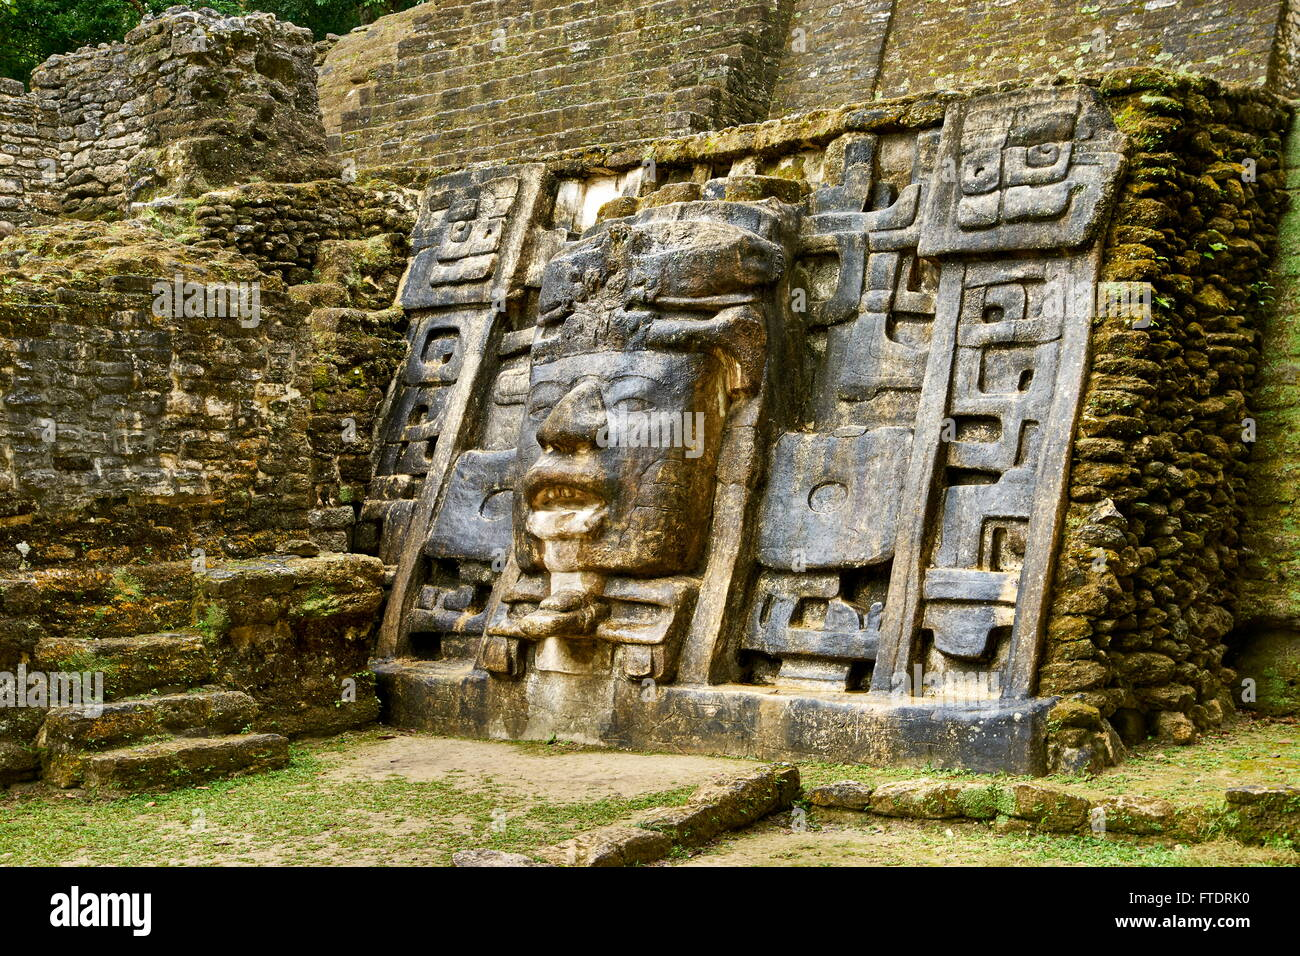 Mask Temple, Ancient Maya Ruins, Lamanai, Belize - Stock Image